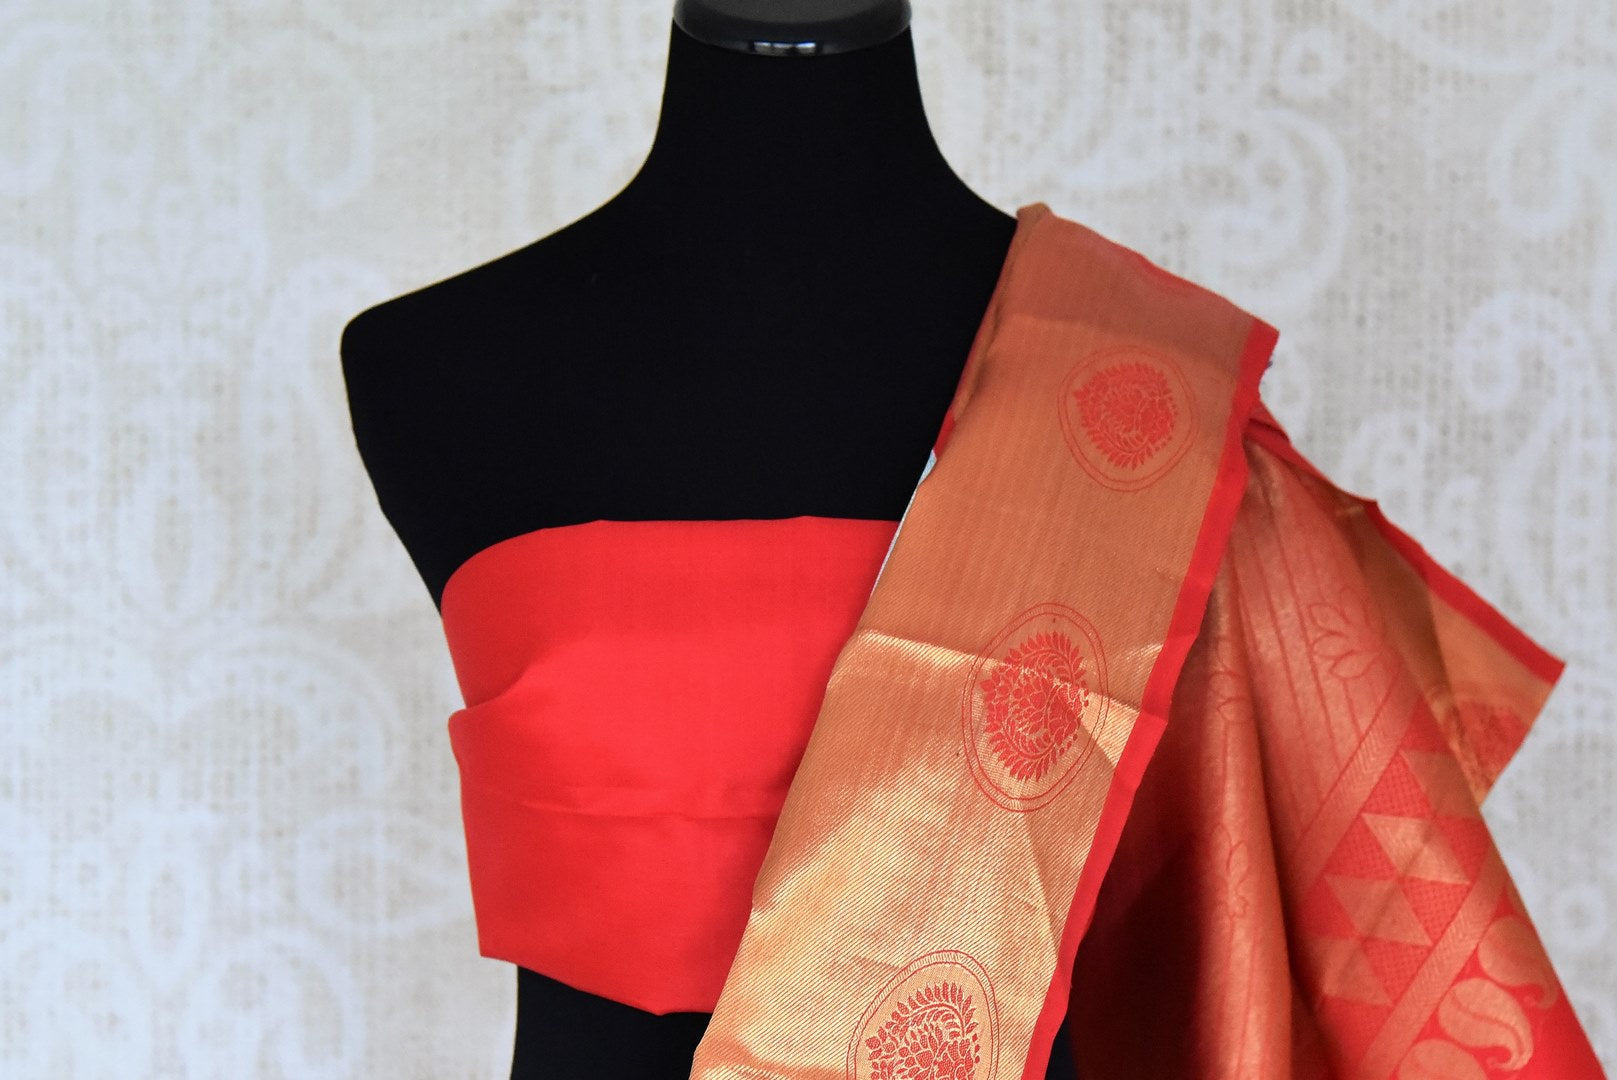 Buy sky blue silver zari saree with red gold zari border online in USA from Pure Elegance. Make your ethnic style perfect with a range of exquisite Indian designer saris with blouses, embroidered sarees, pure handloom sarees available at our exclusive Indian fashion store in USA and also on our online store. Shop now.-blouse pallu